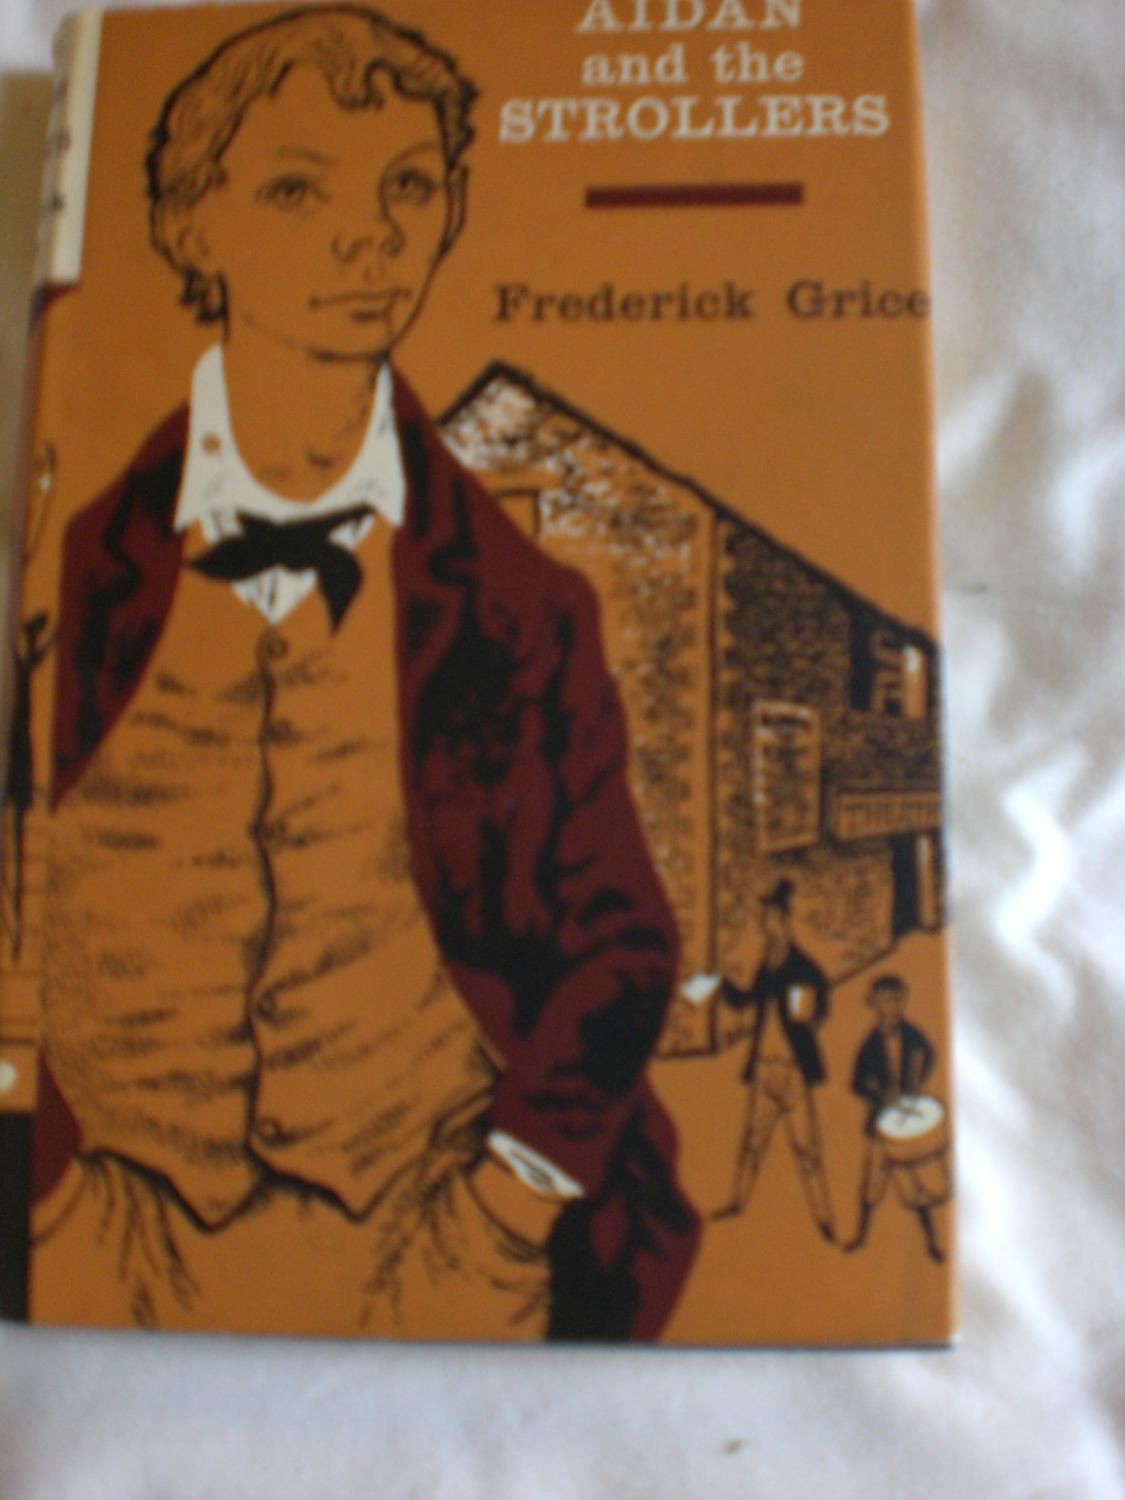 Aidan and The strollers Grice, Frederick Very Good Hardcover J Cape 1960 First Edition Hardback . Very good + in very good+ unclipped dust jacket. This copy has a dedication and is signed by the author: 'to his